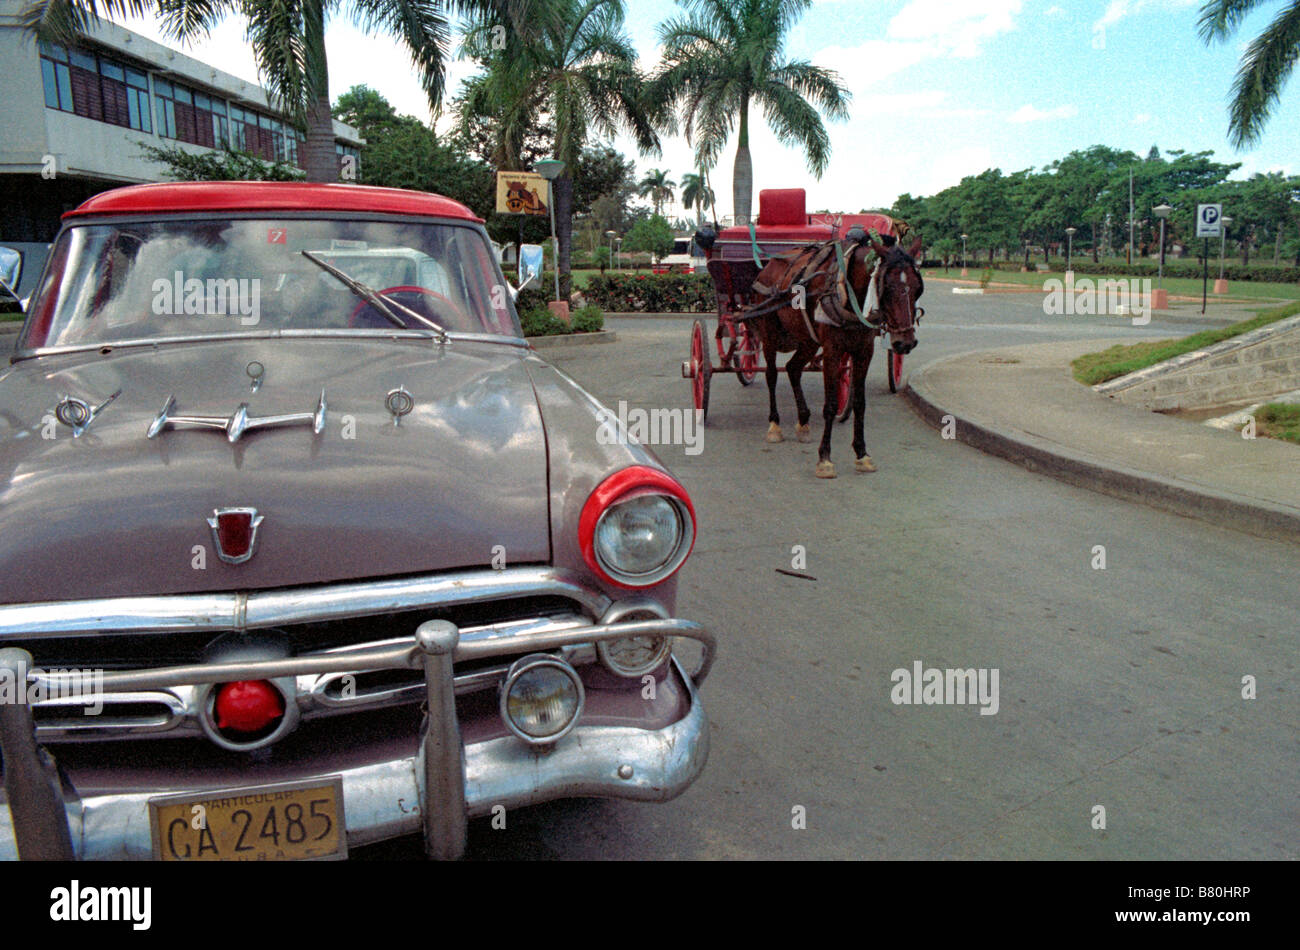 Two common types of transportation in Cuba. An vintage American car ...